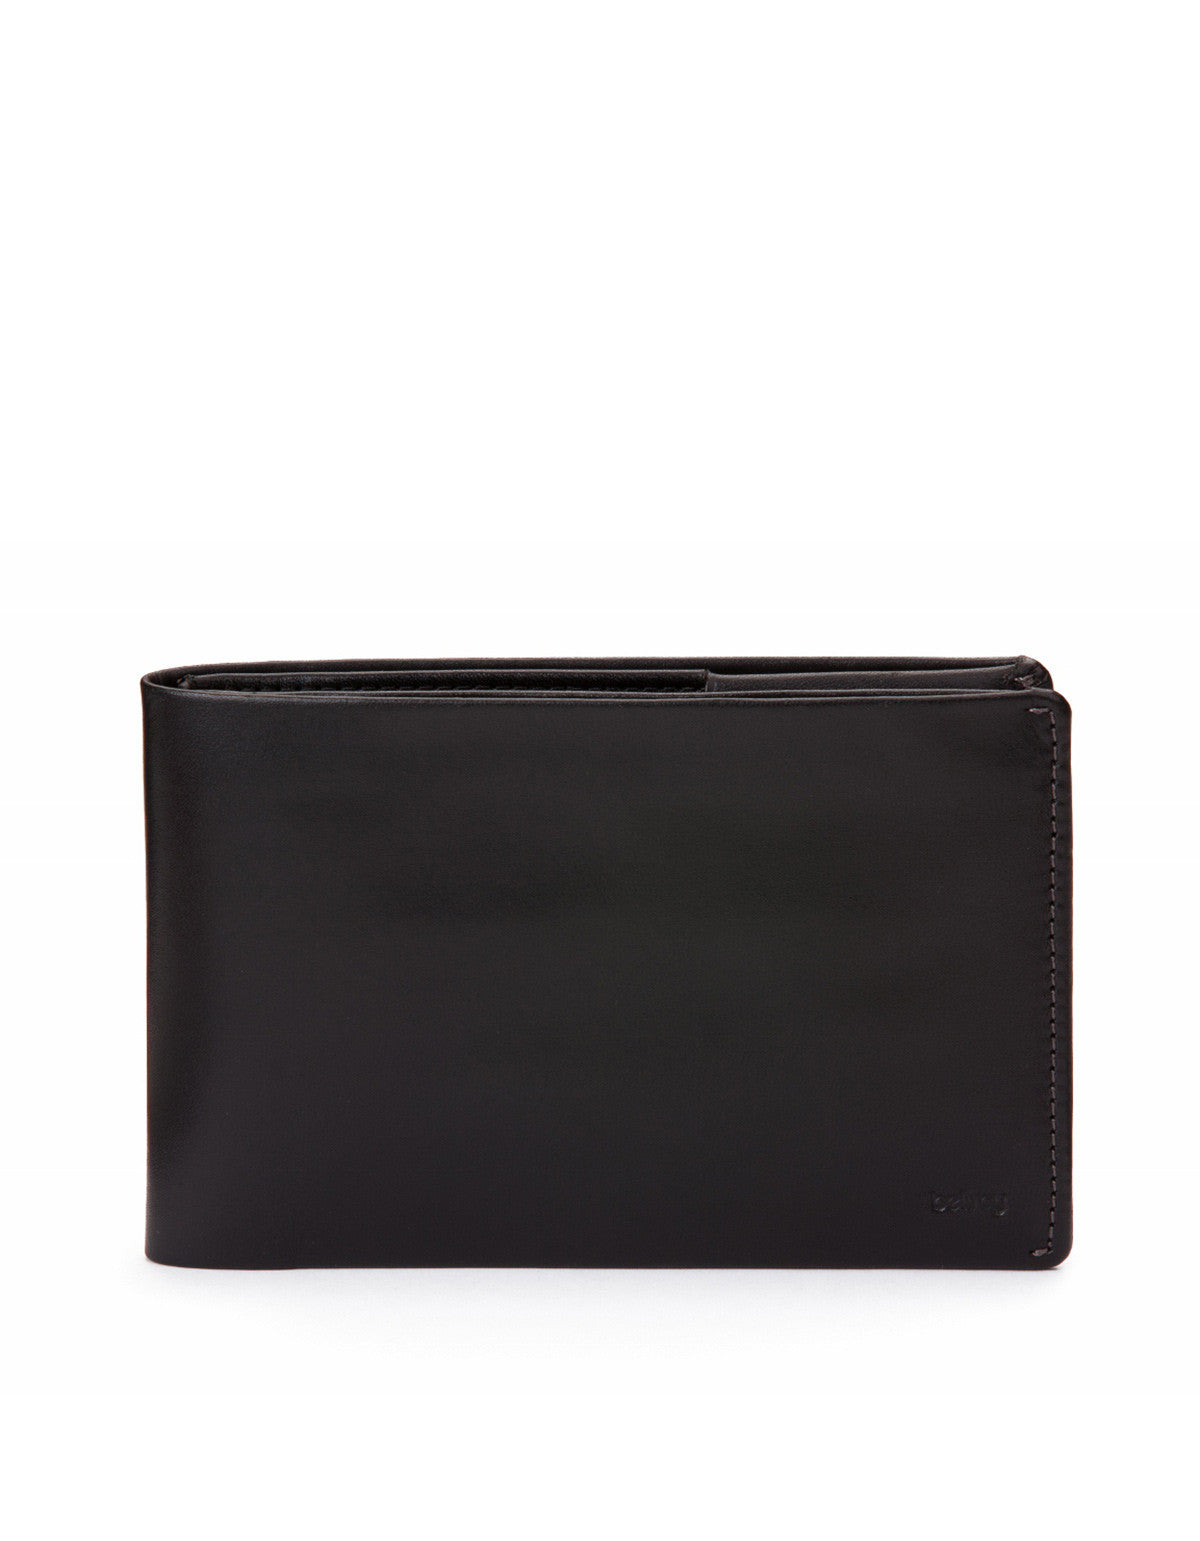 Bellroy Travel Wallet Midnight - Still Life - 1